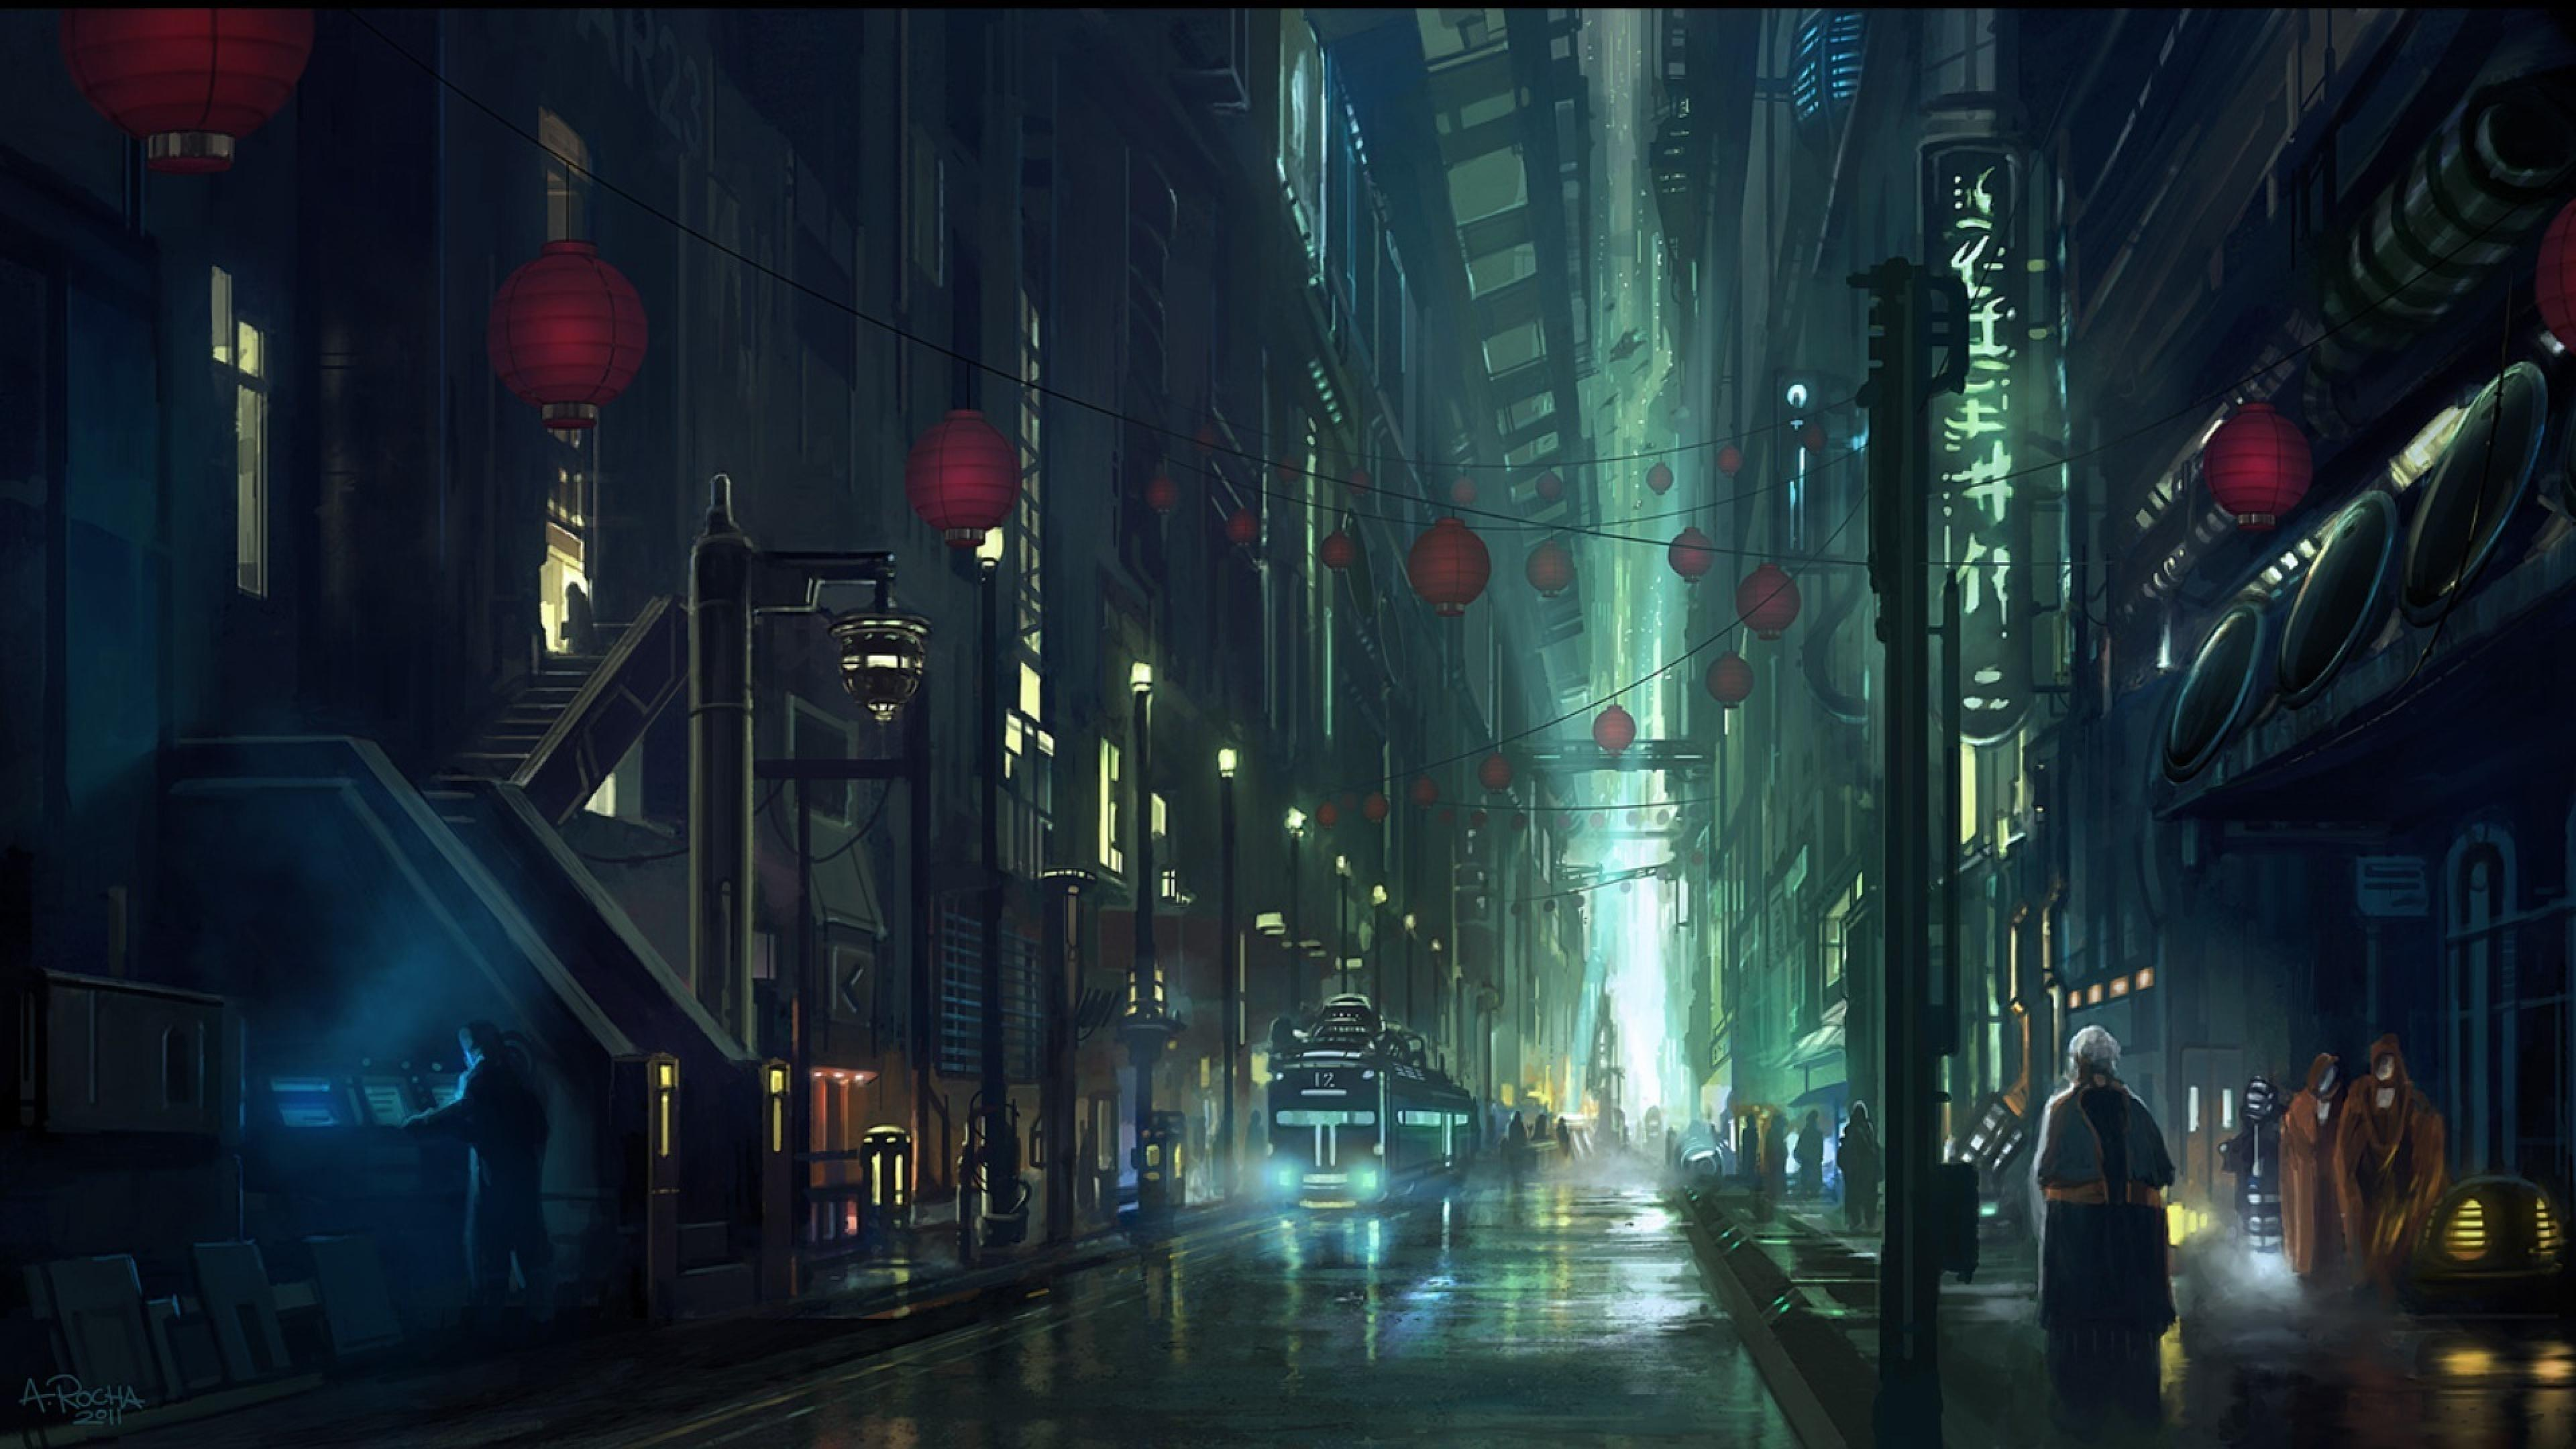 art_fantasy_city_future_night_people_ultra_3840x2160_hd-wallpaper-348028.jpg